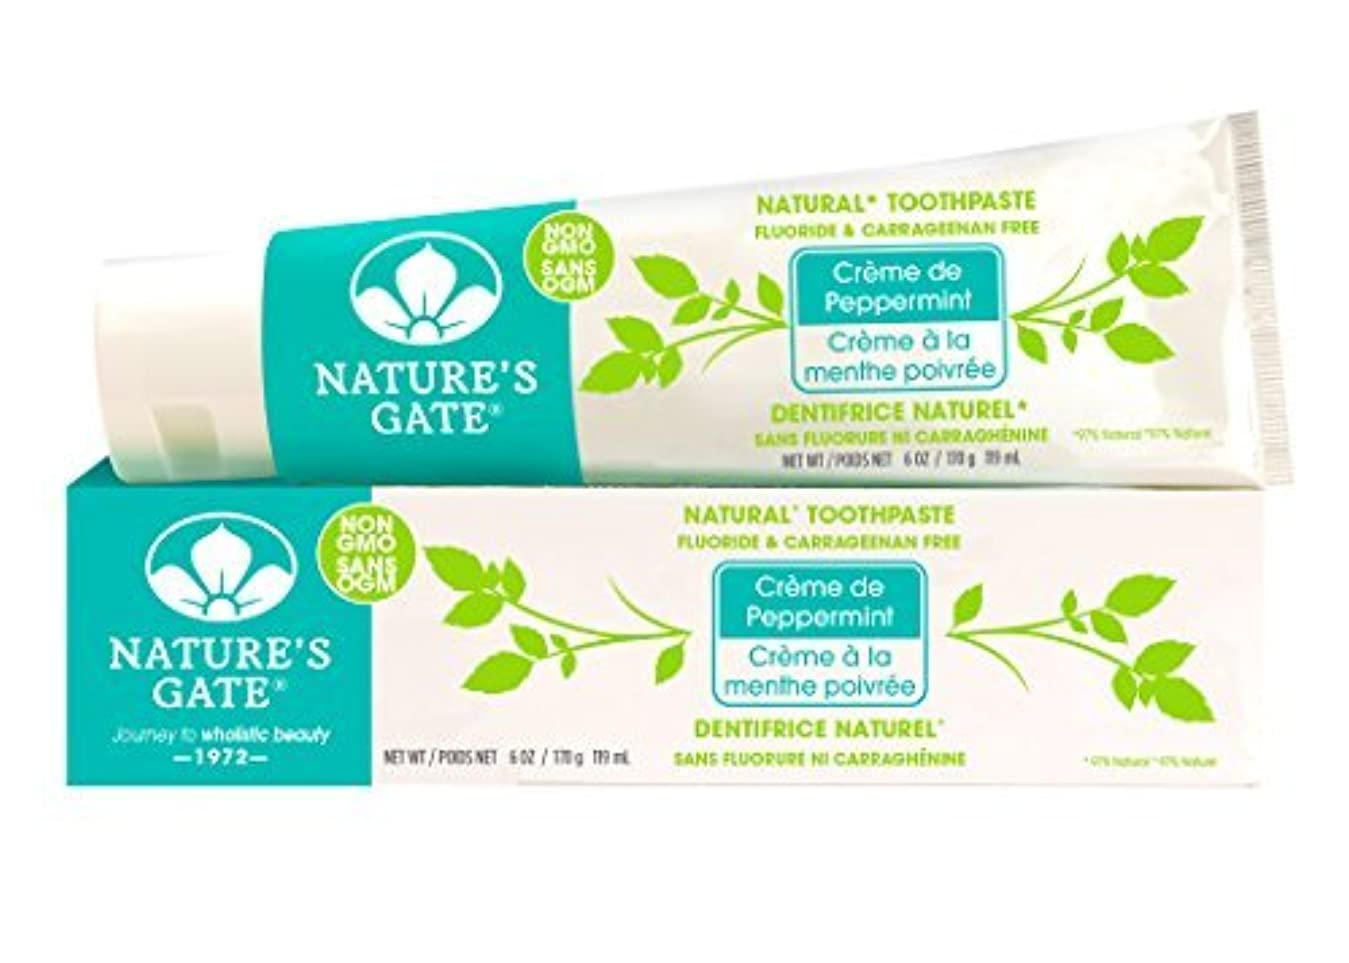 引く不適切なカストディアンNature's Gate Natural Toothpaste, Creme de Peppermint, 6-Ounce Tubes (Pack of 6) by Nature's Gate [並行輸入品]